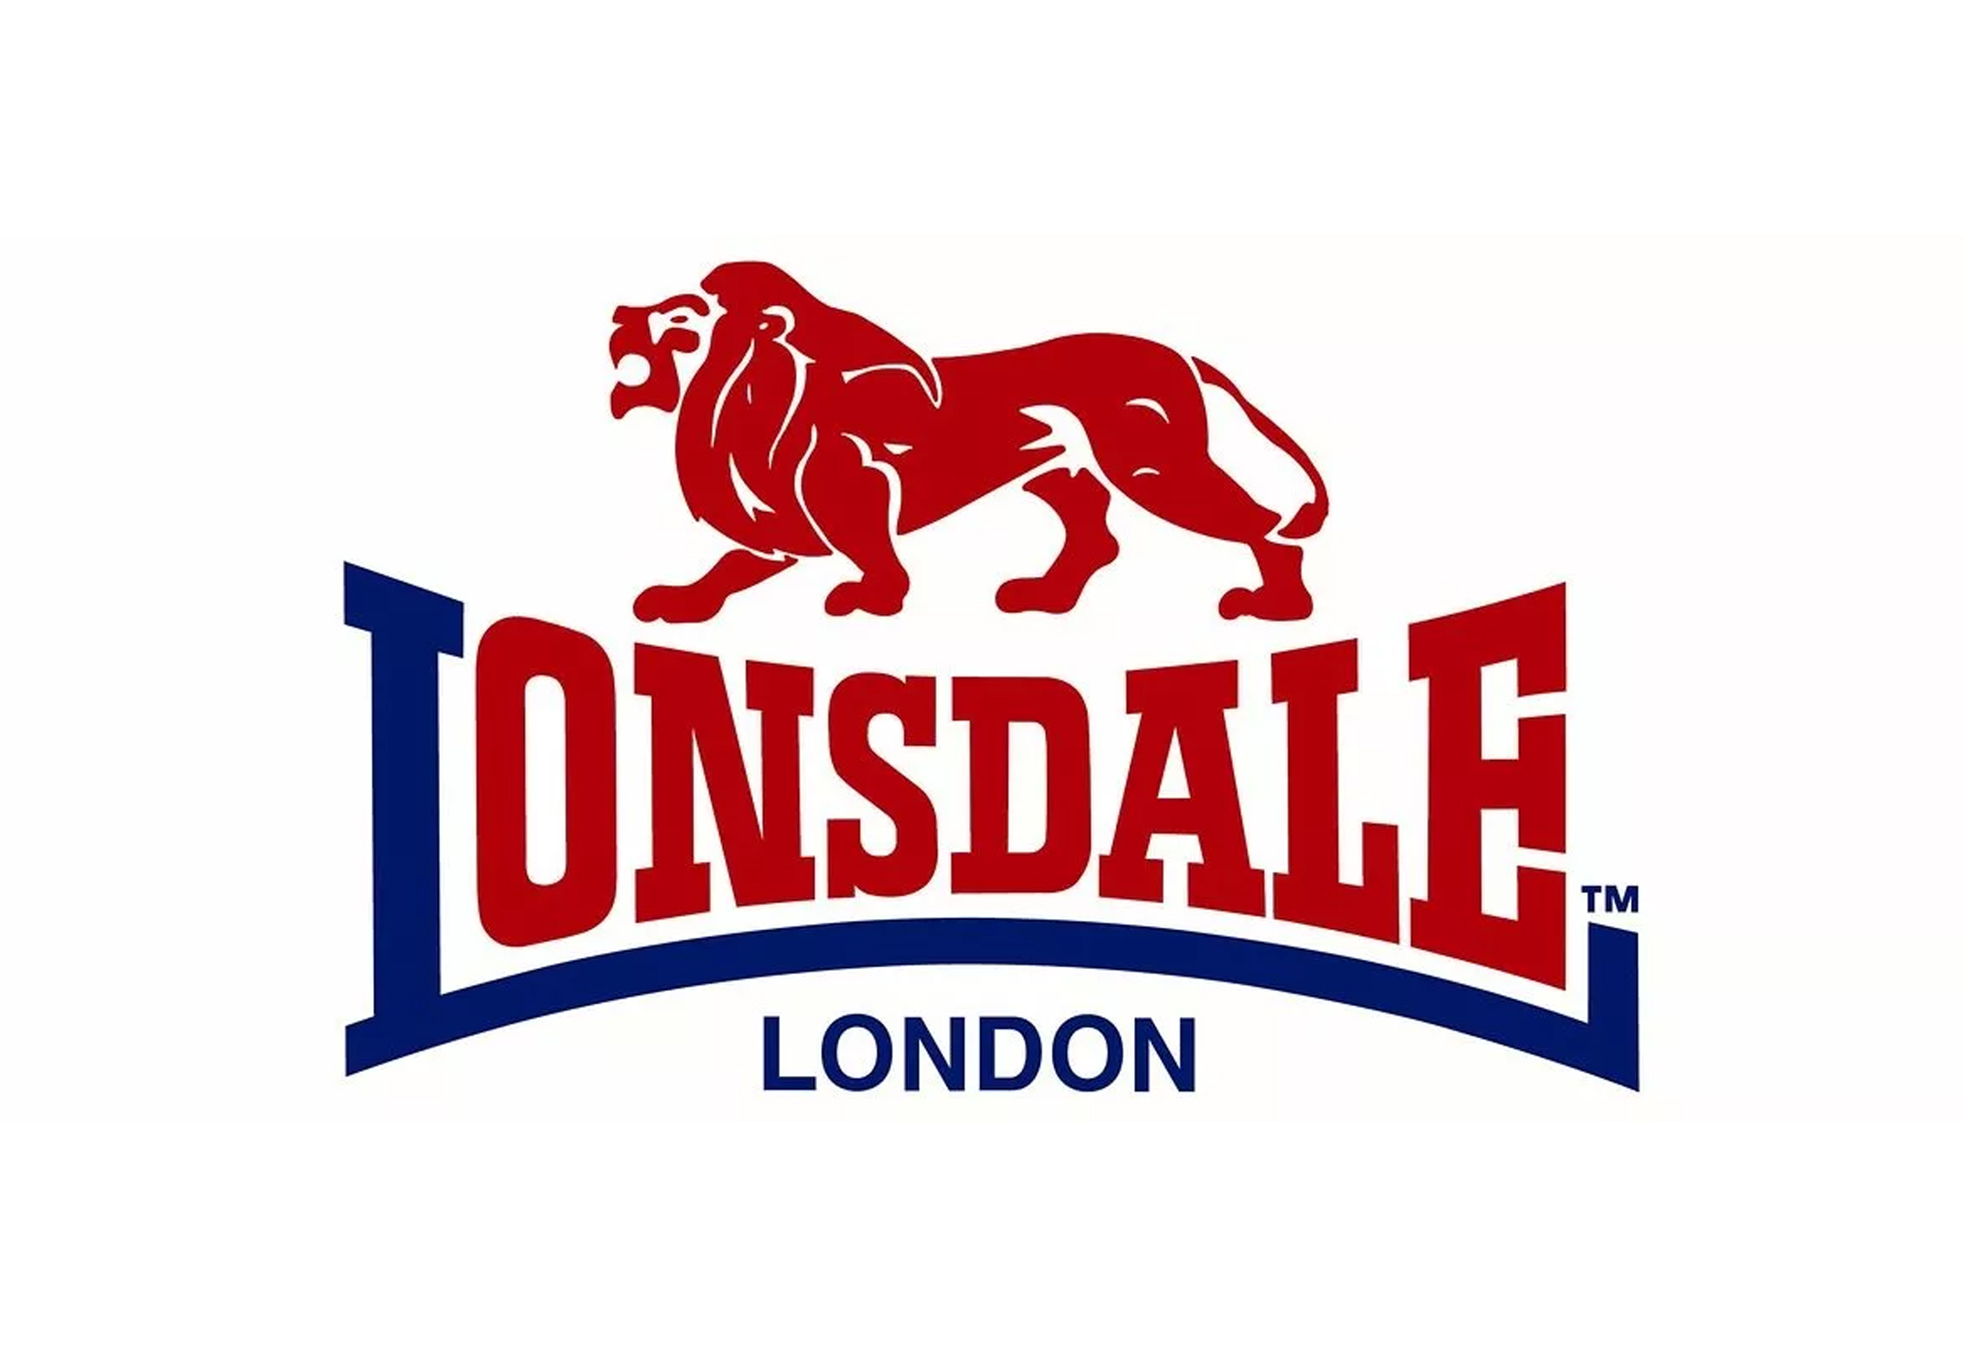 Шрифт LONSDALE